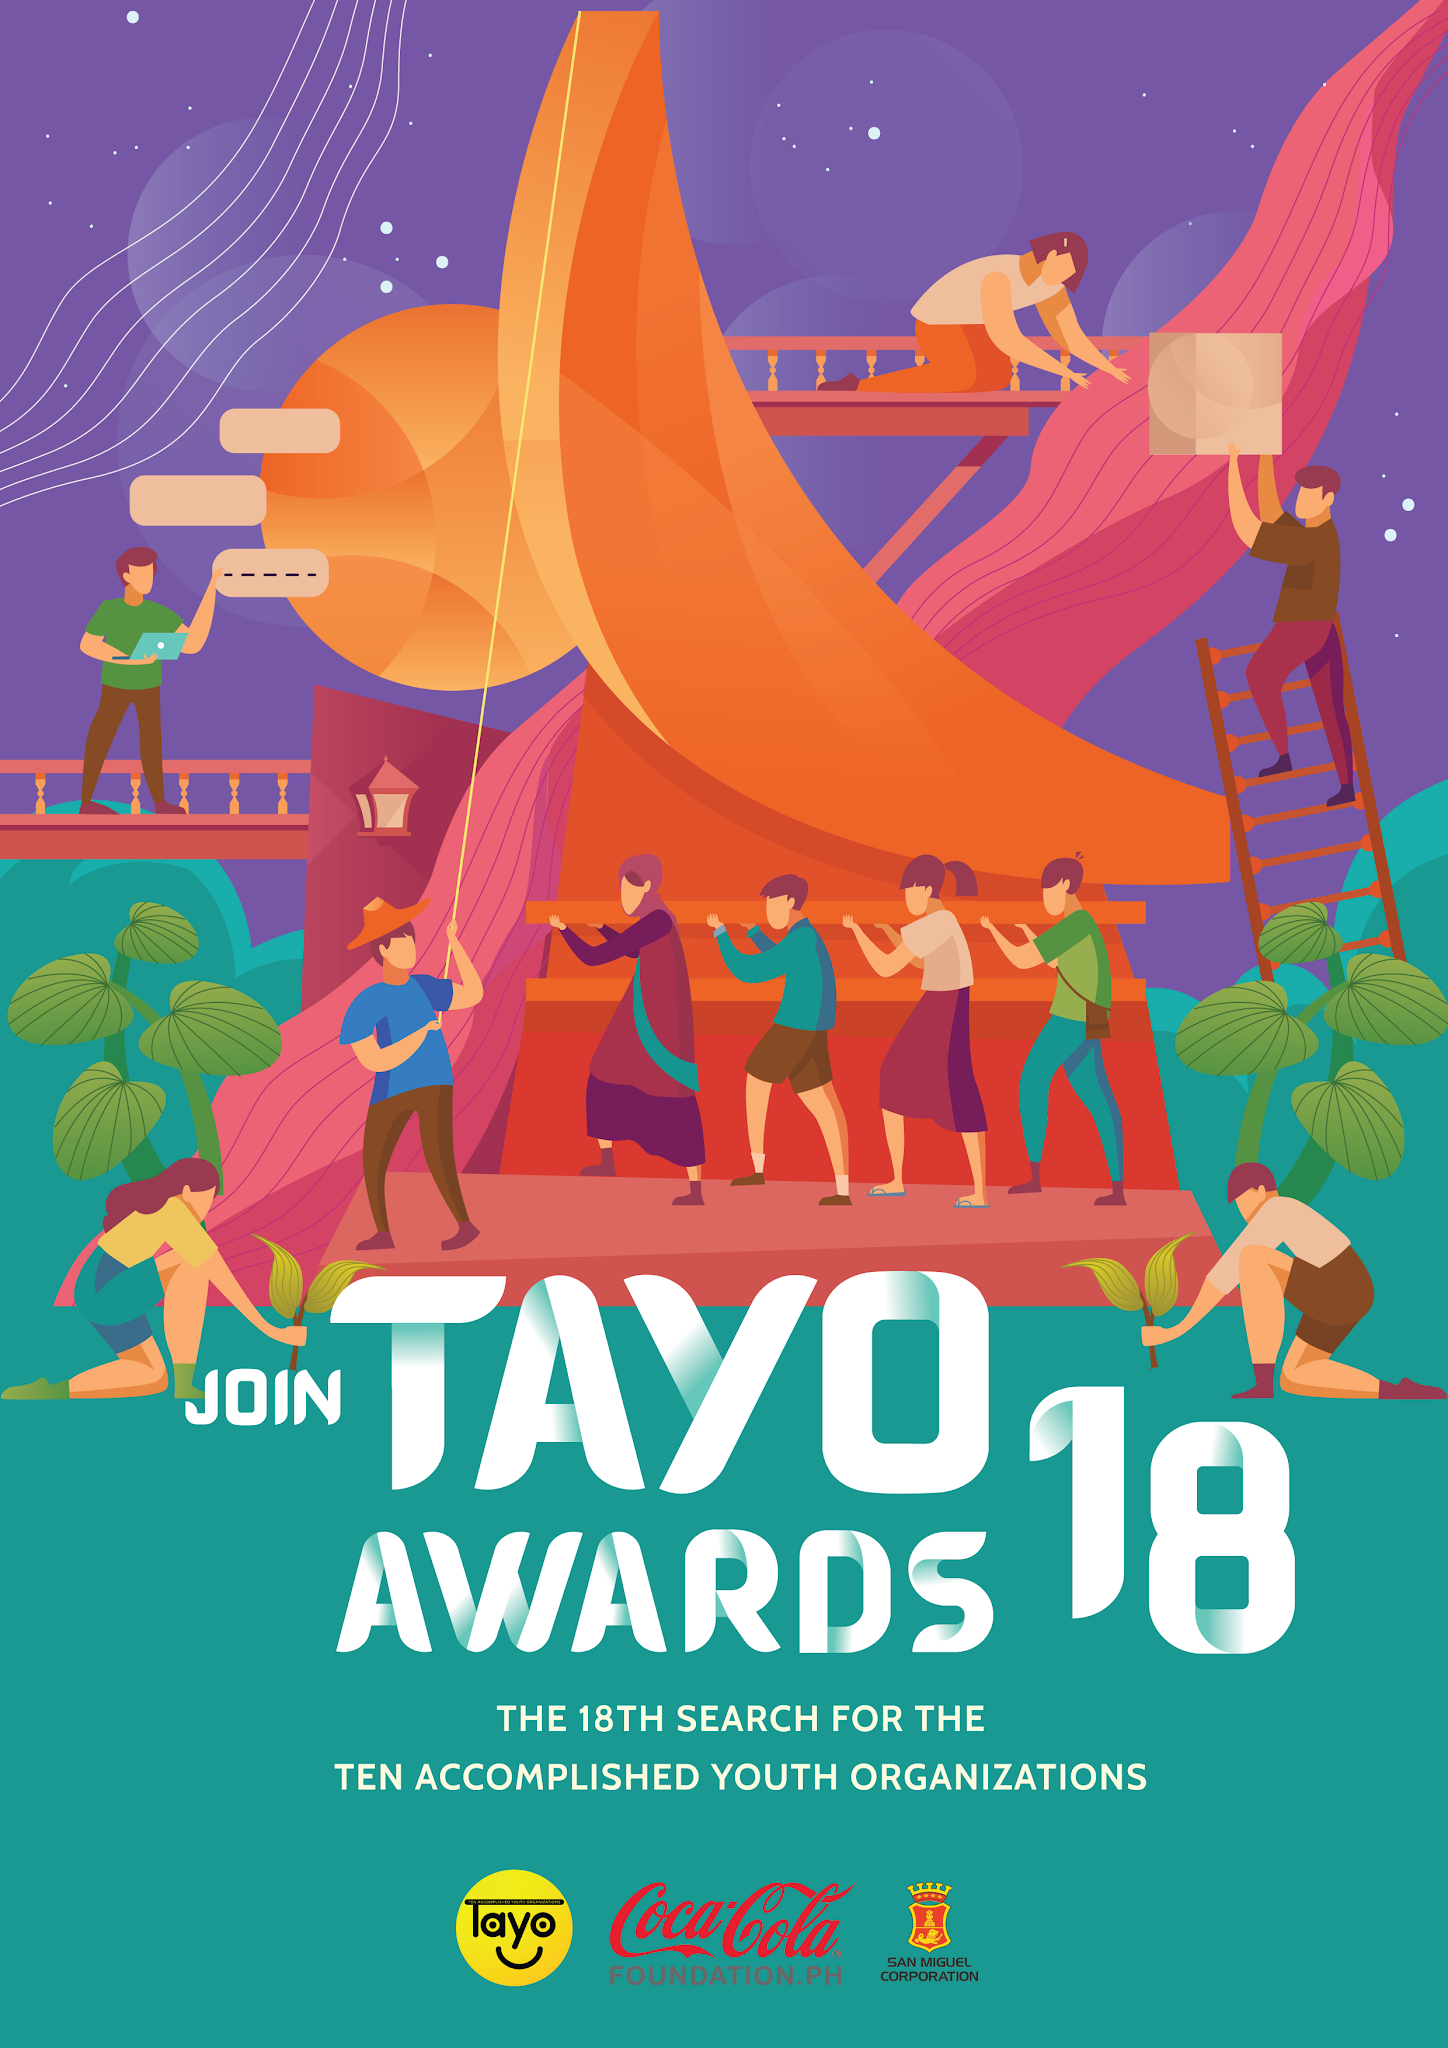 TAYO Awards 2020 Opens Digital Search For Youth Groups With COVID-19 Response Programs